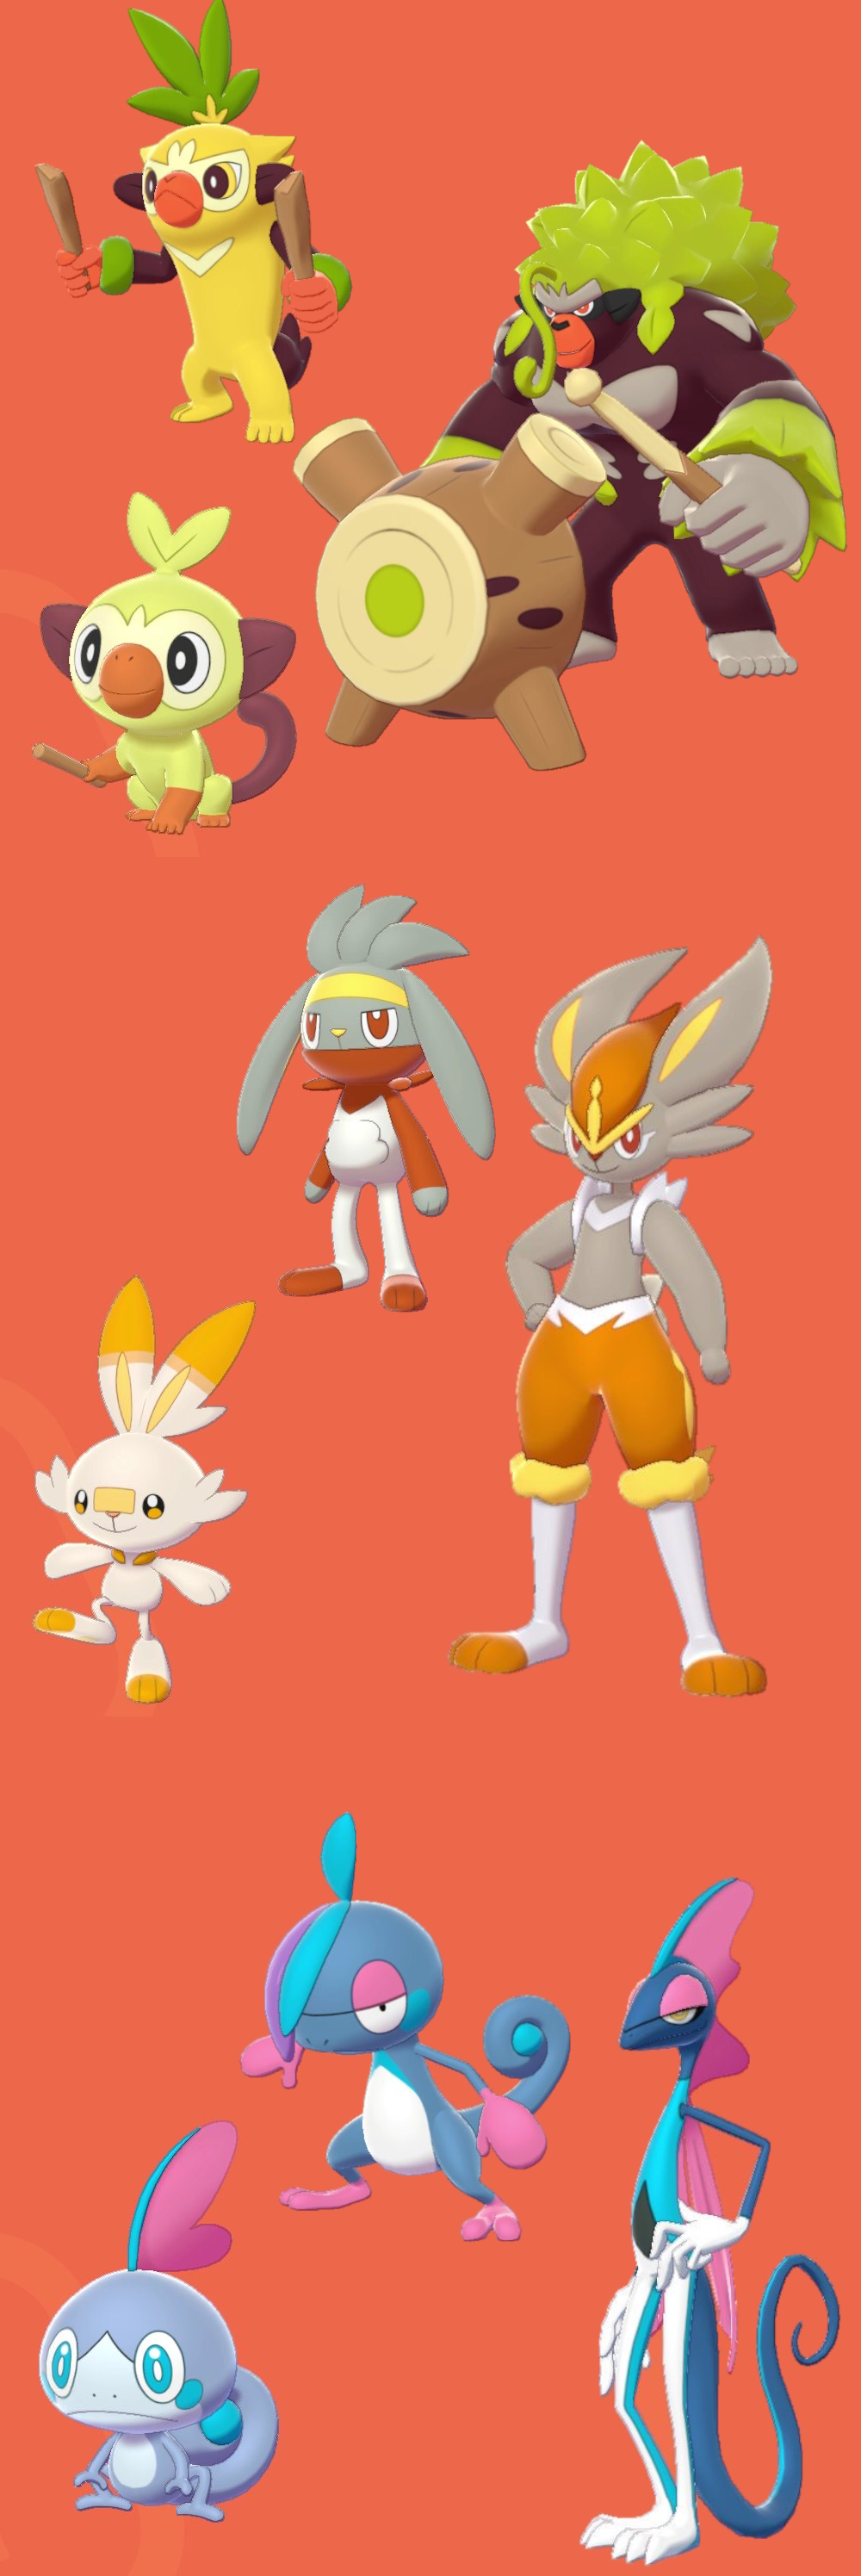 Starter Line Shiny Leak Showcase Pokemon Sword And Shield Know Your Meme Read on for information on its evolutions, abilities, type advantages, and more. starter line shiny leak showcase